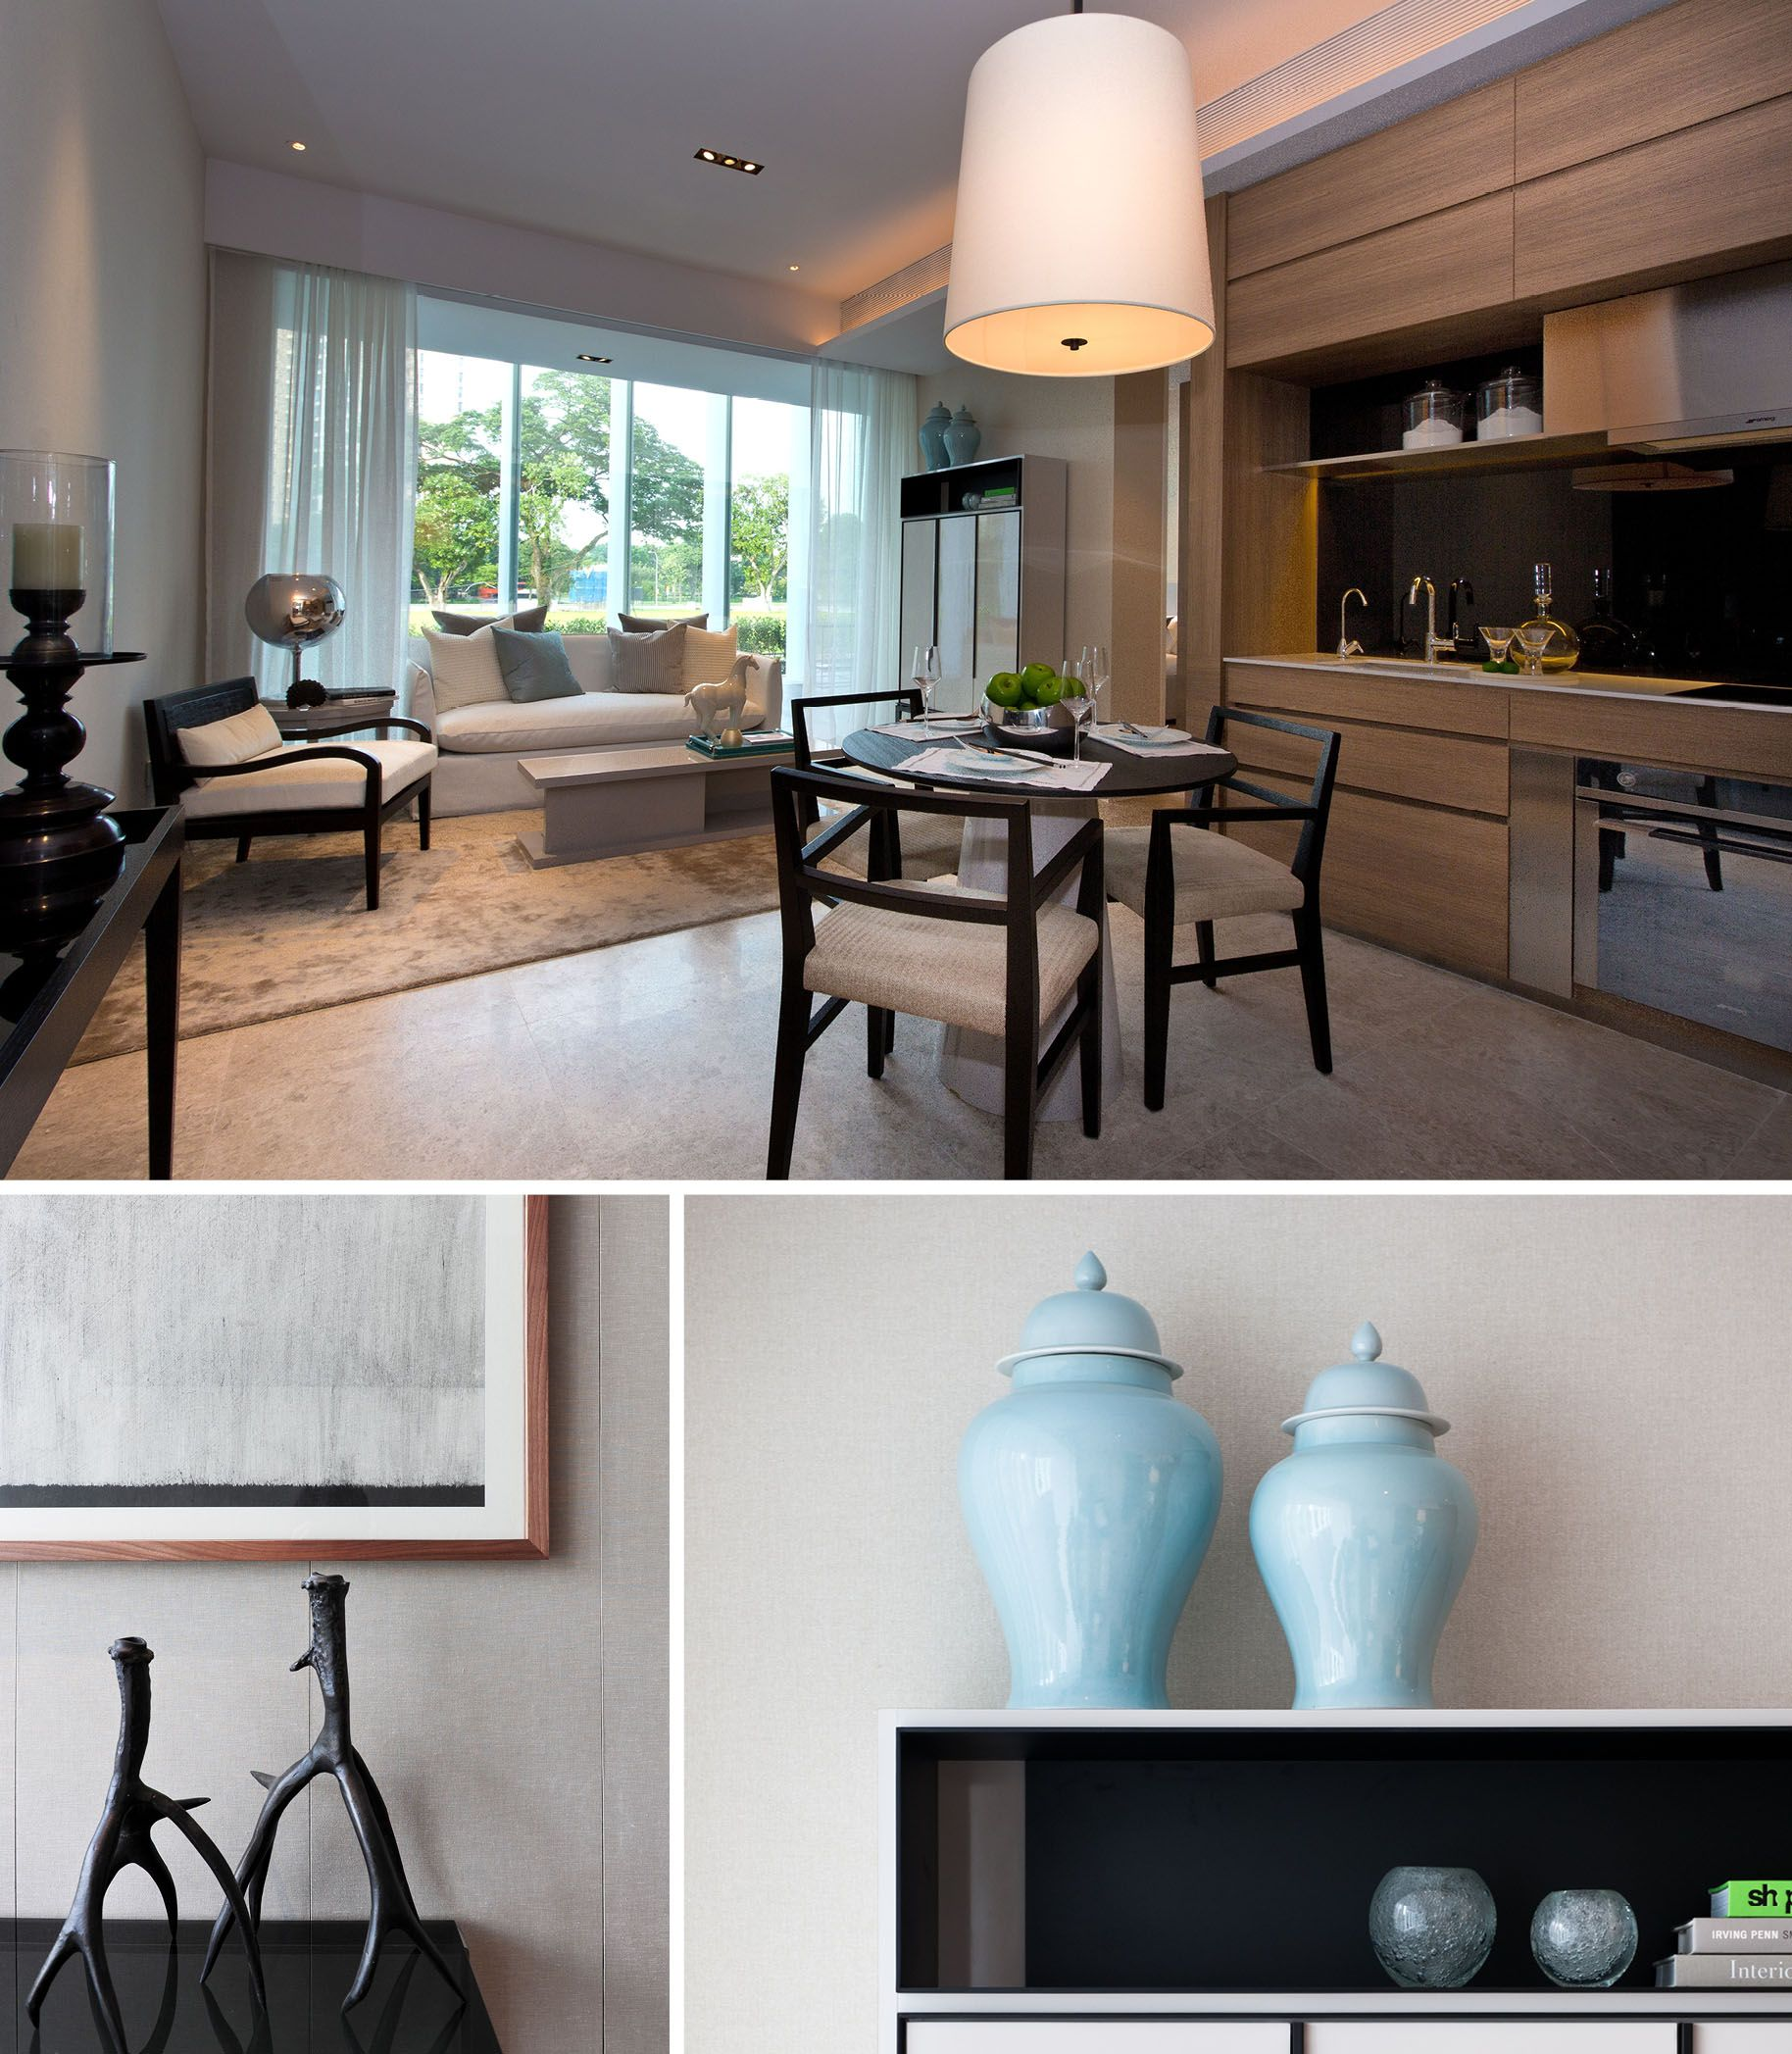 This would make a great studio apartment scda echelon singapore architecture inspiration - Studio apartment interior ...